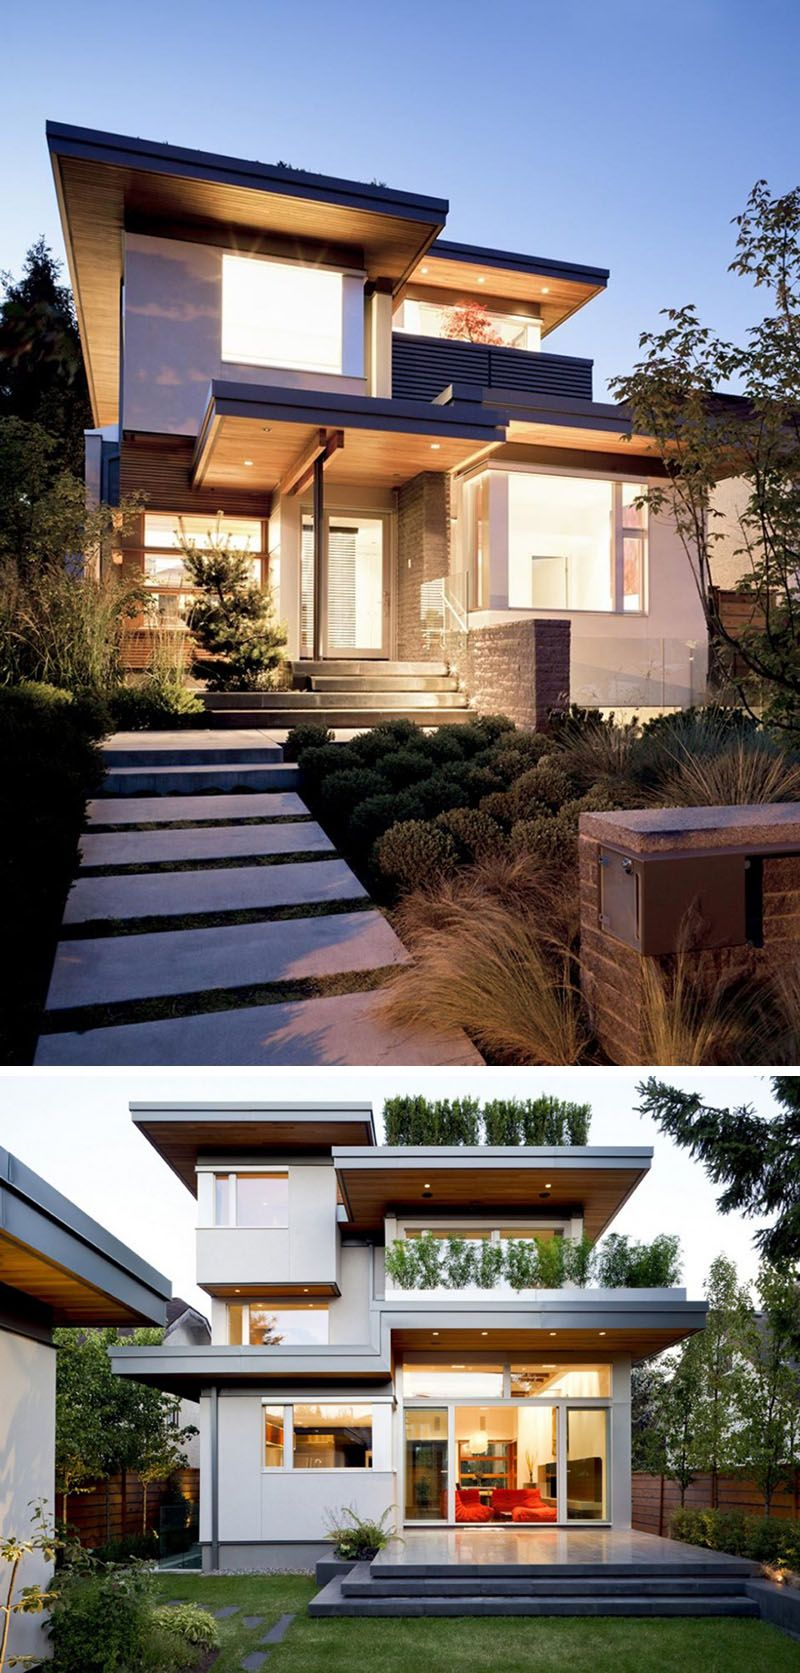 20 Awesome Examples Of Pacific Northwest Architecture | Innen außen ...